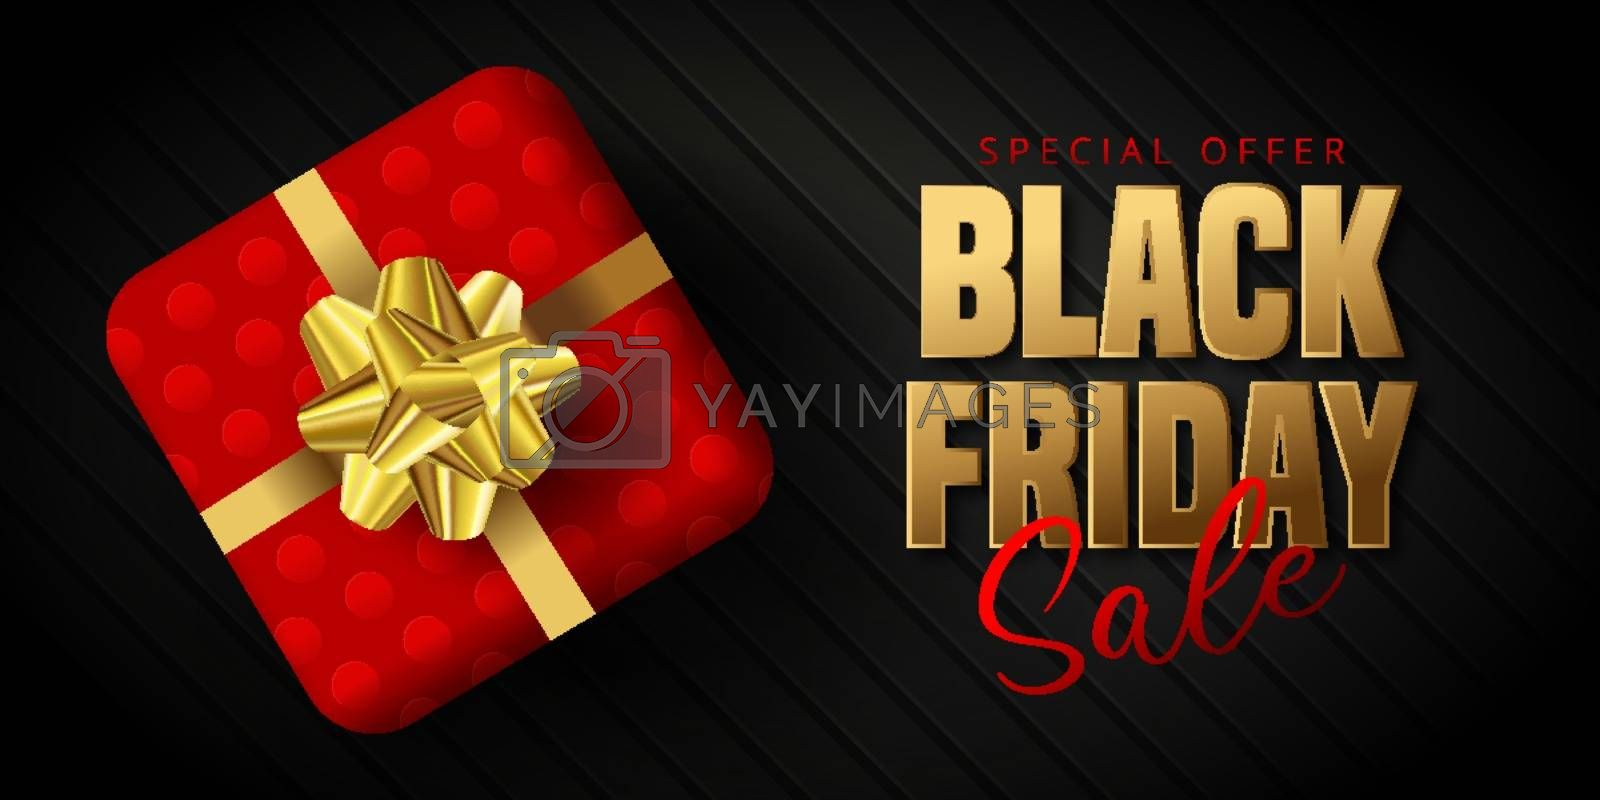 Black Friday Sale banner, poster, flyer design with gift box on black background. Modern design template for advertisement, social and fashion ads